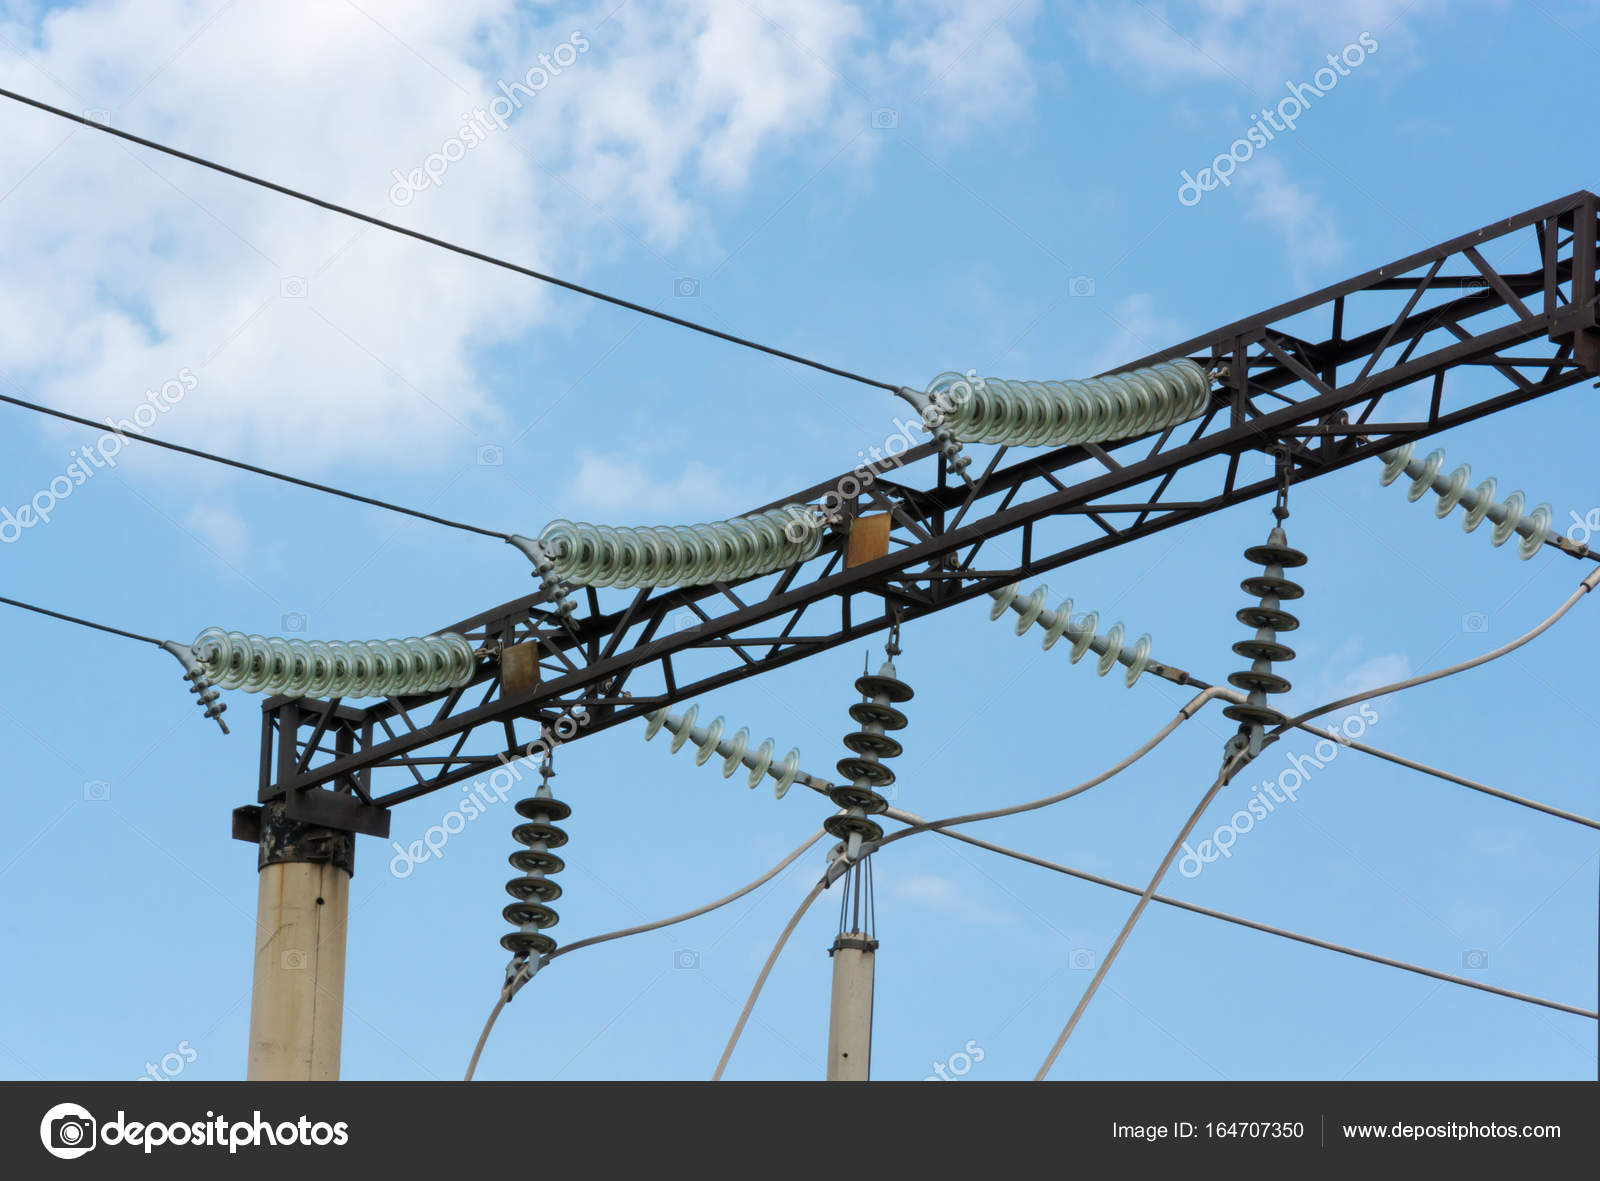 High-voltage wires with insulators — Stock Photo © panzer25 #164707350